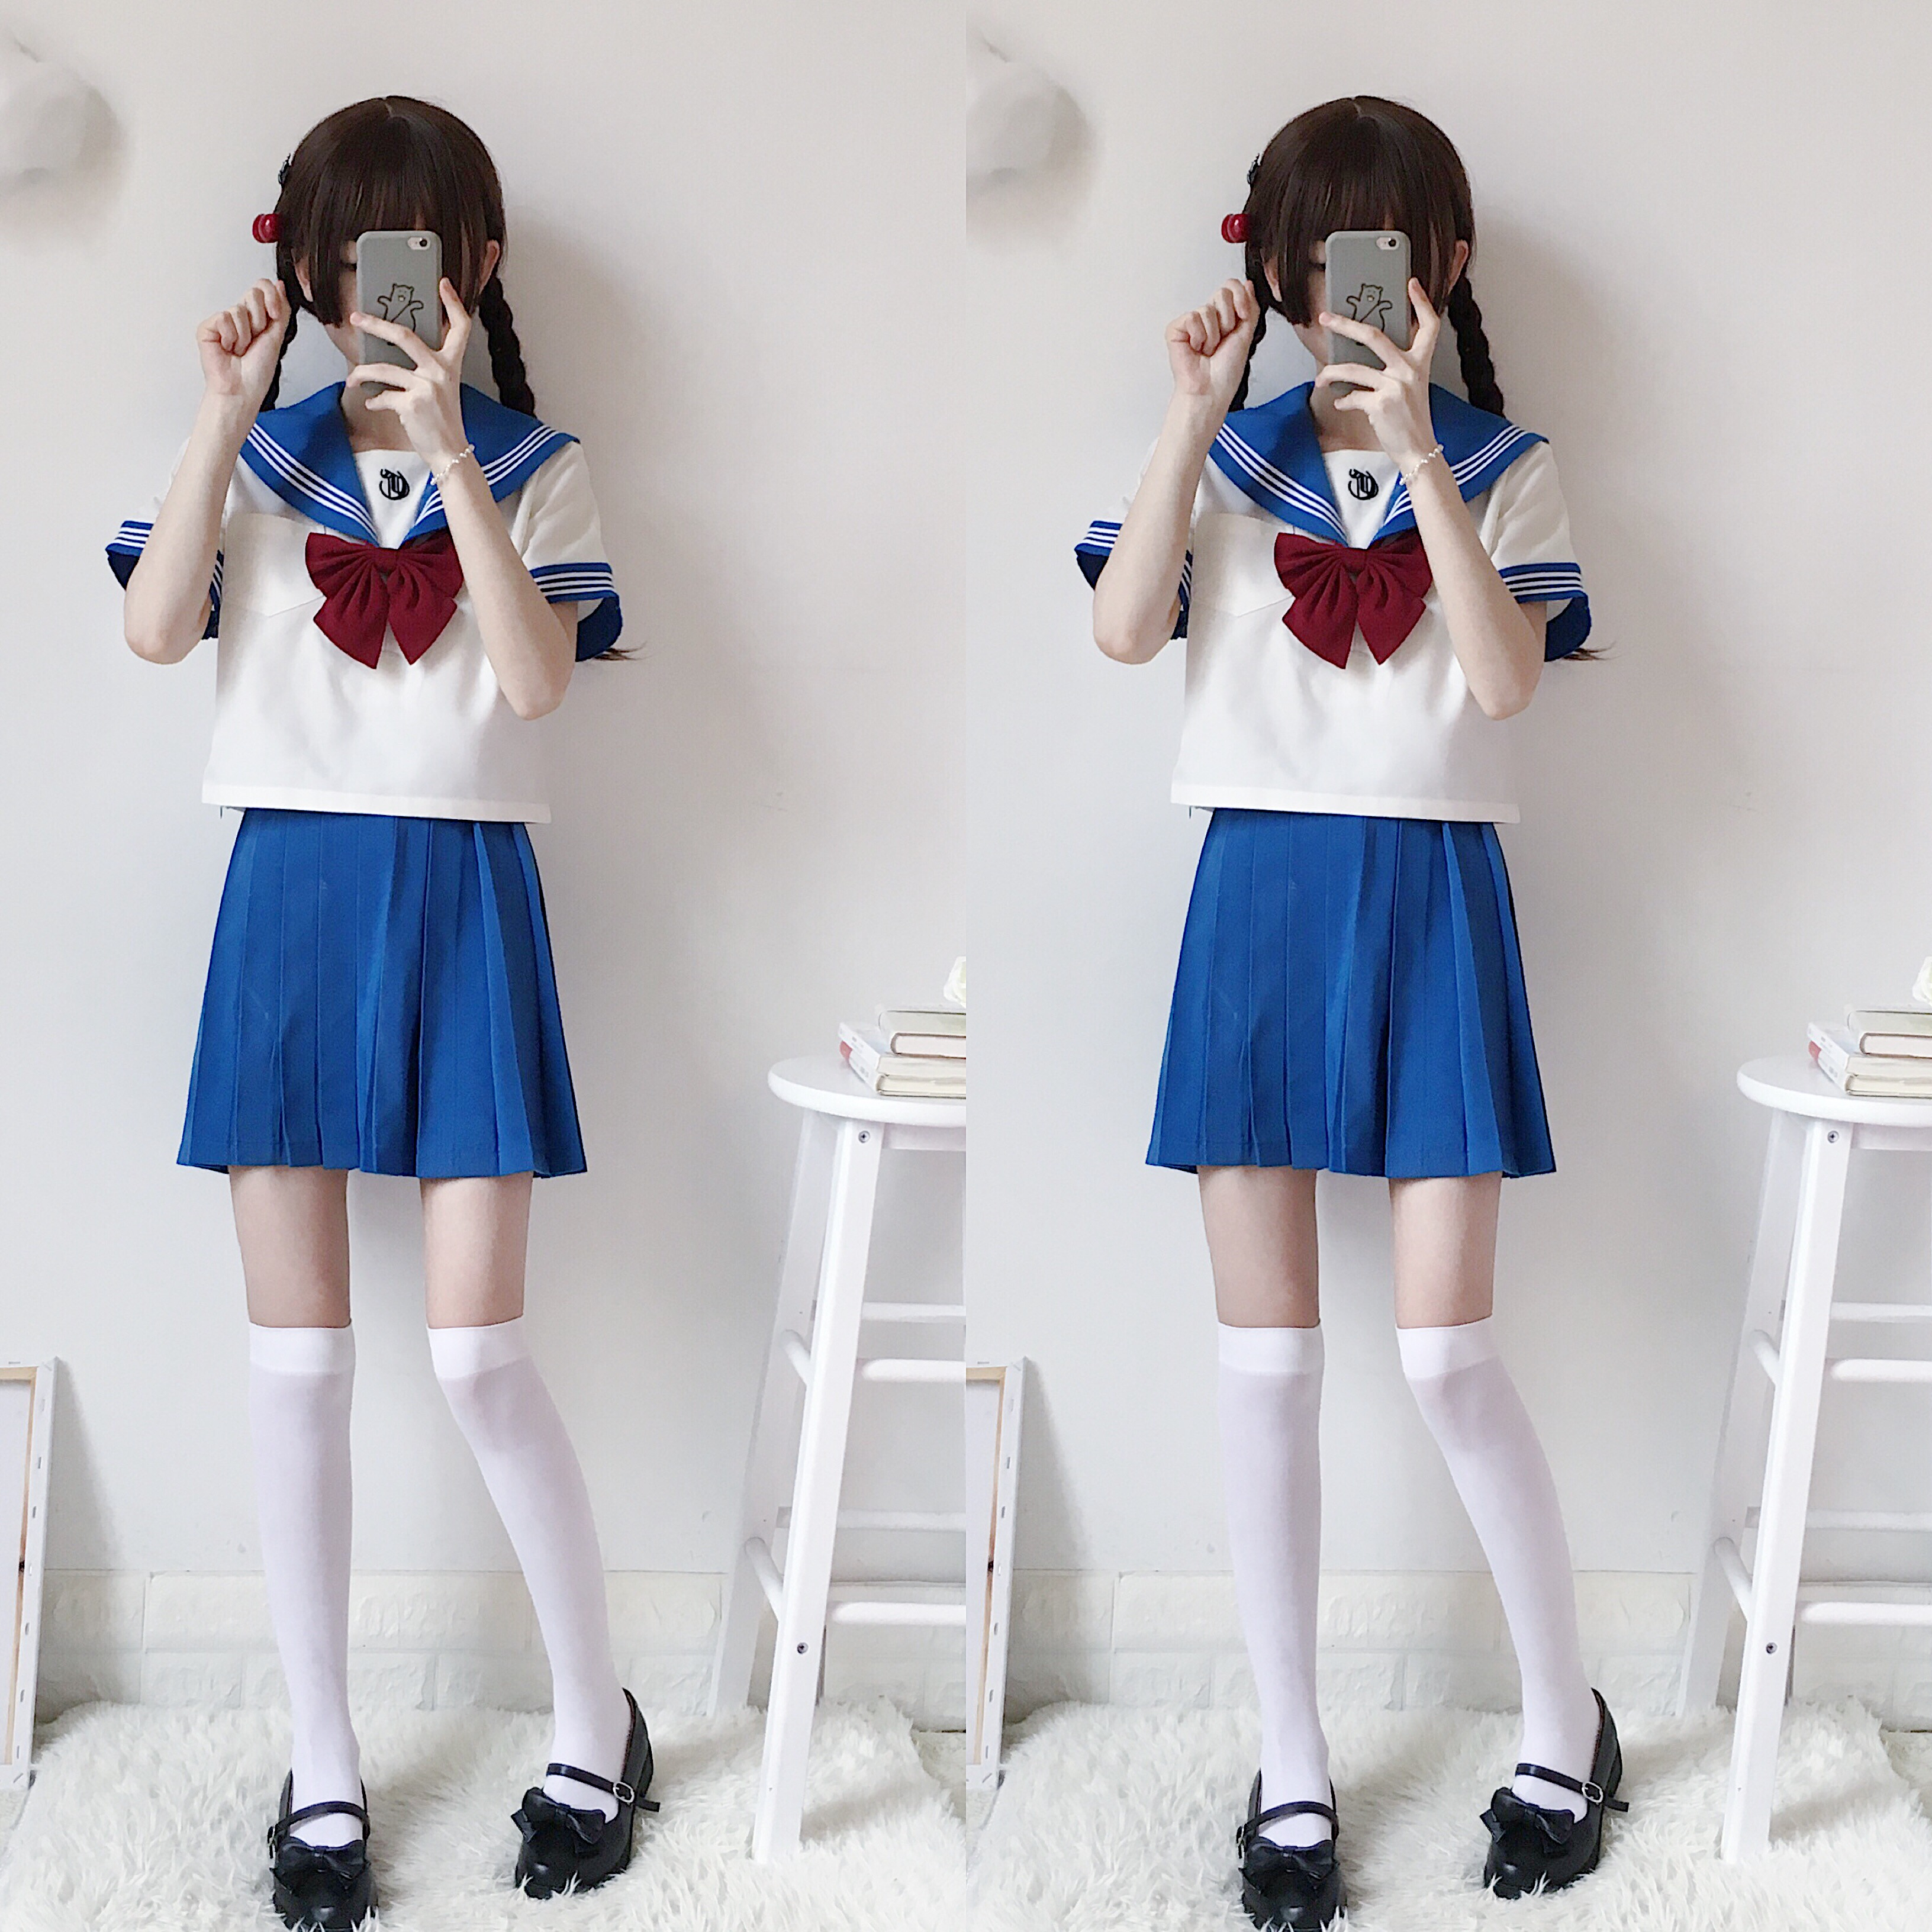 2019 New Japanese School Uniforms Sailor Tops+tie+skirt Navy Style Students Clothes For Girl Plus Size Lala Cheerleader Clothing